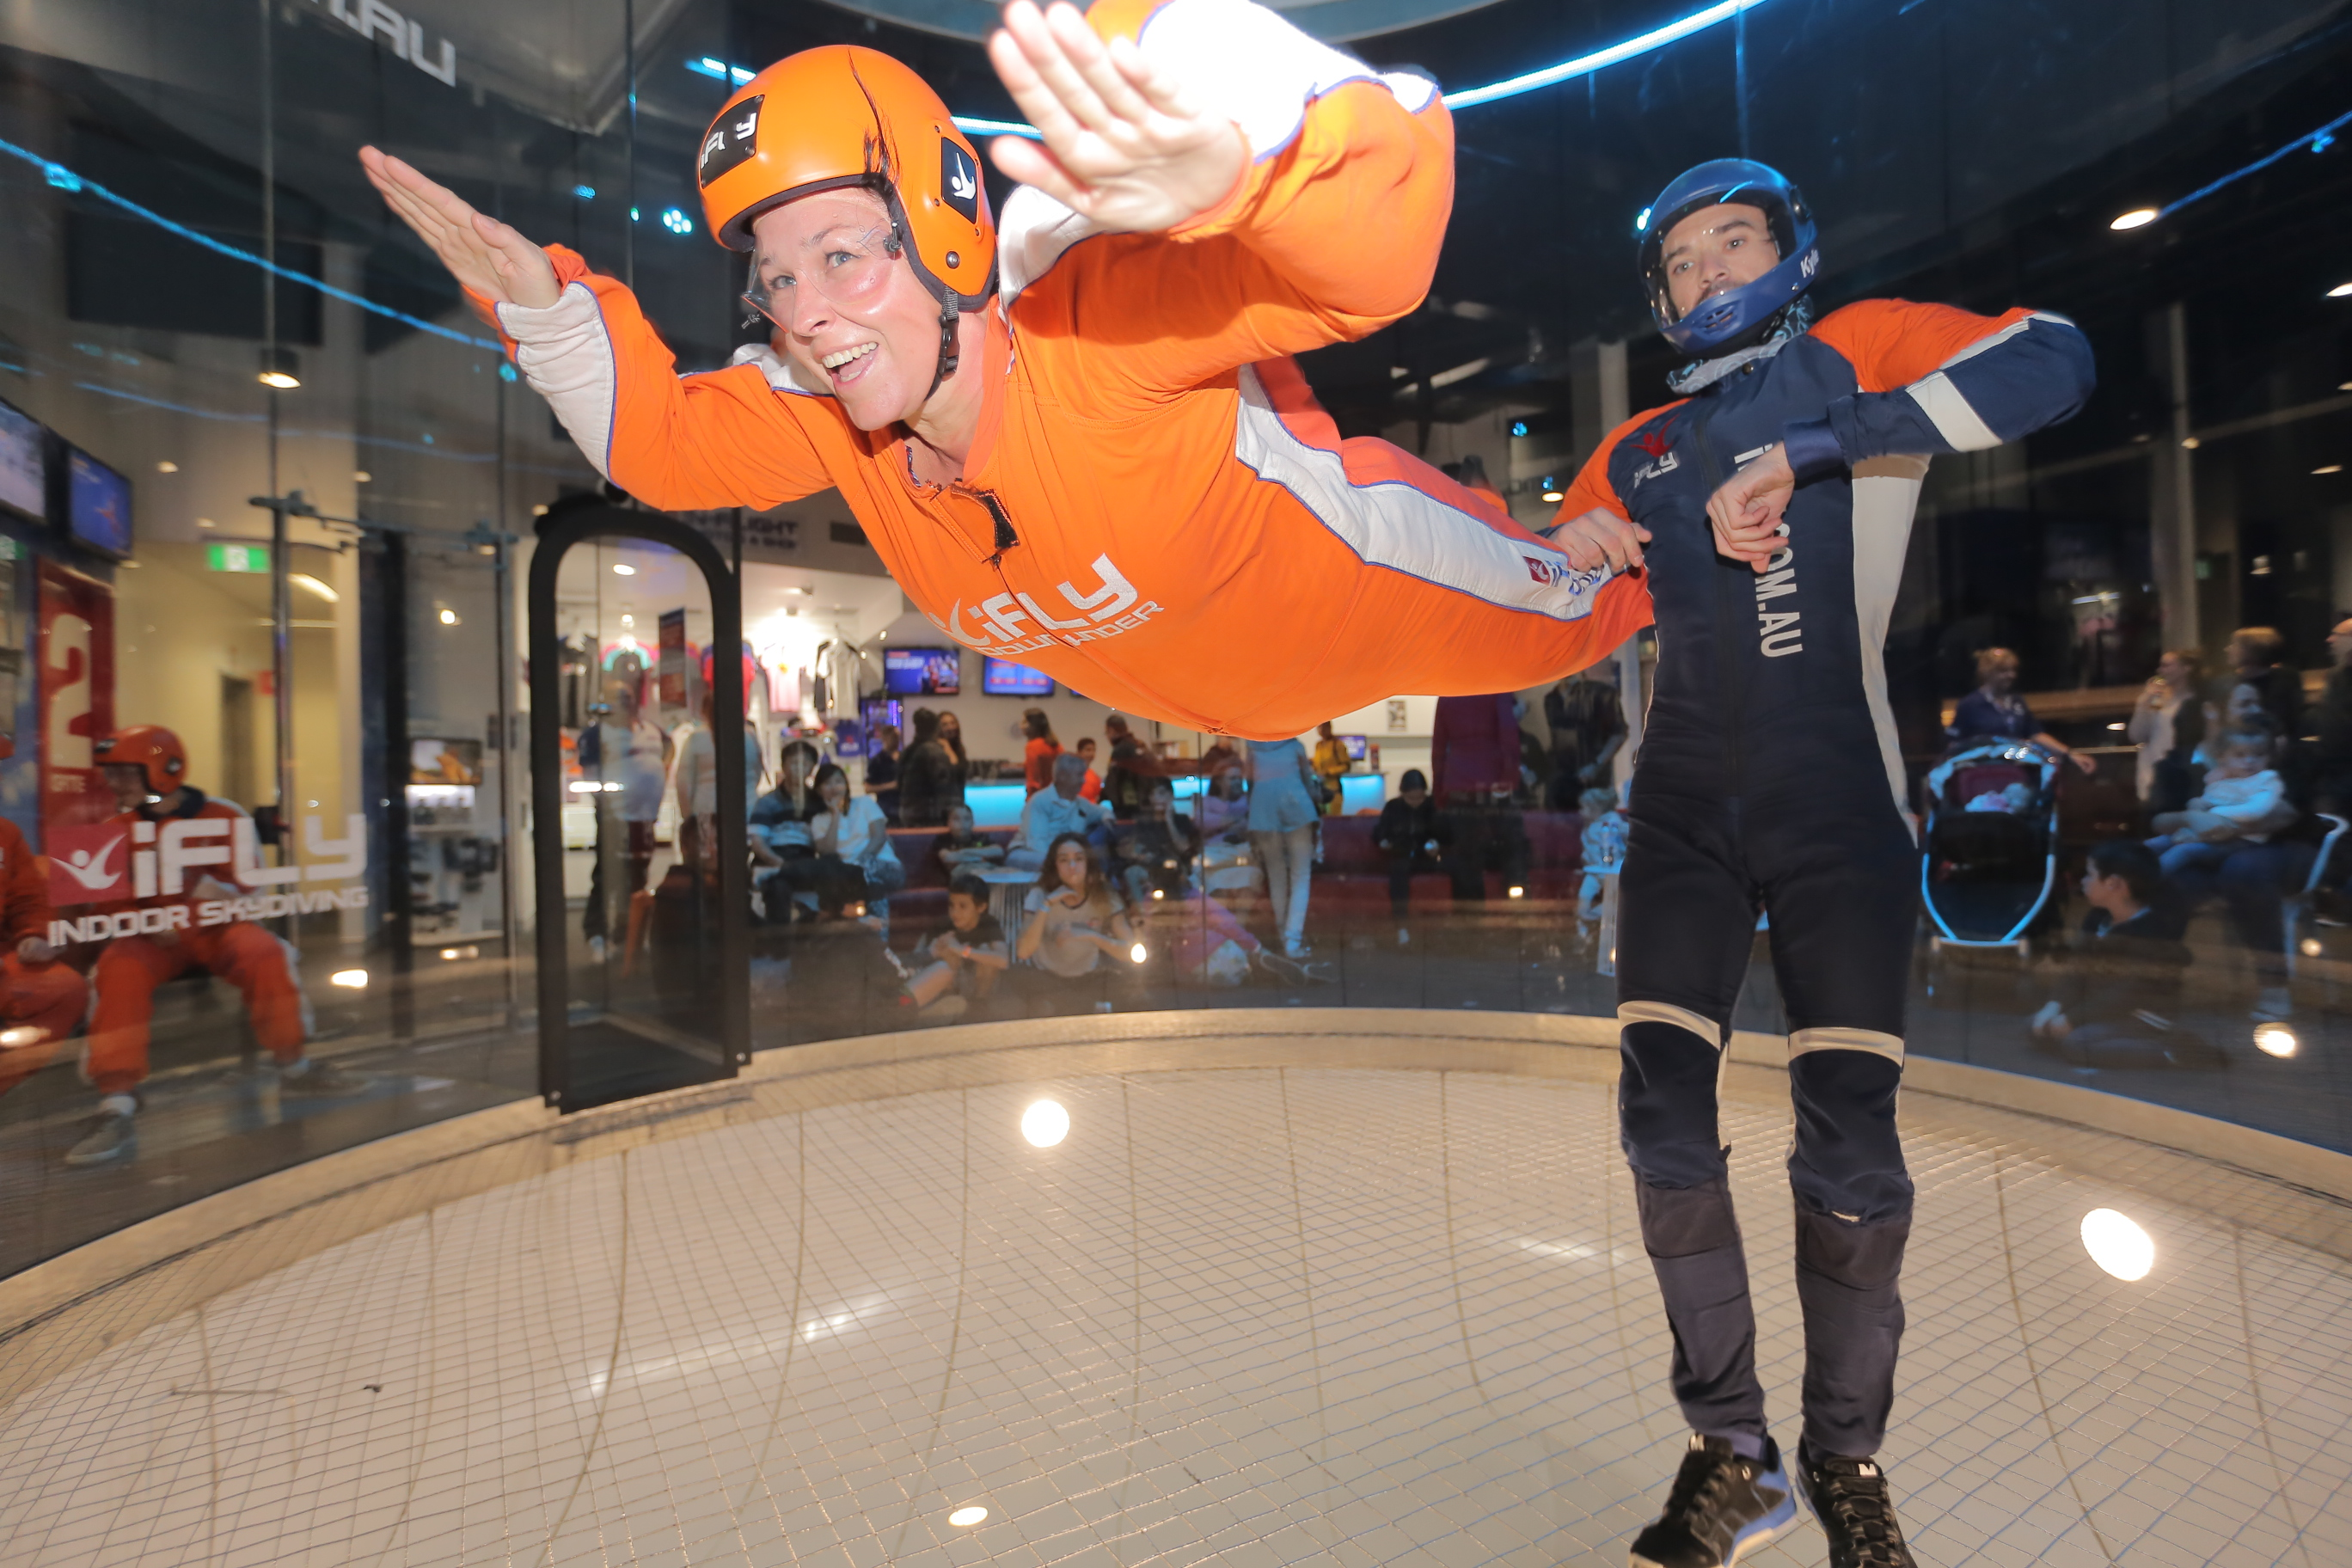 iFly:  A review